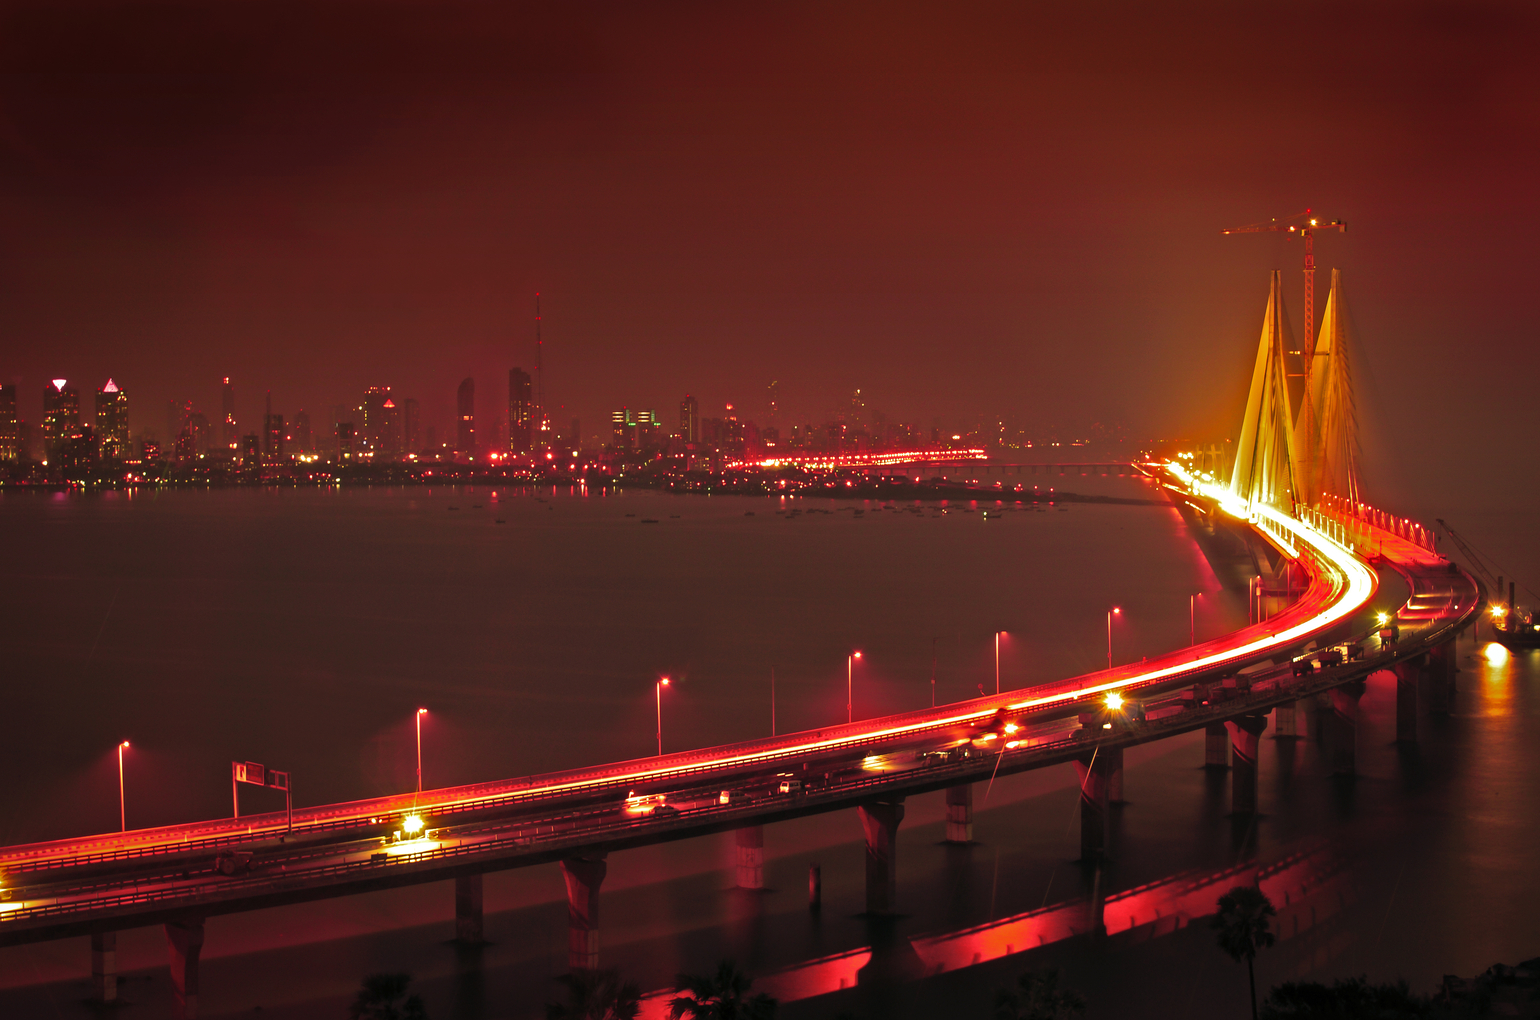 A Cable Stayed Vehicular Bridge That Links Bandra In The Northern Suburb Of Mumbai With Worli In South Mumbai